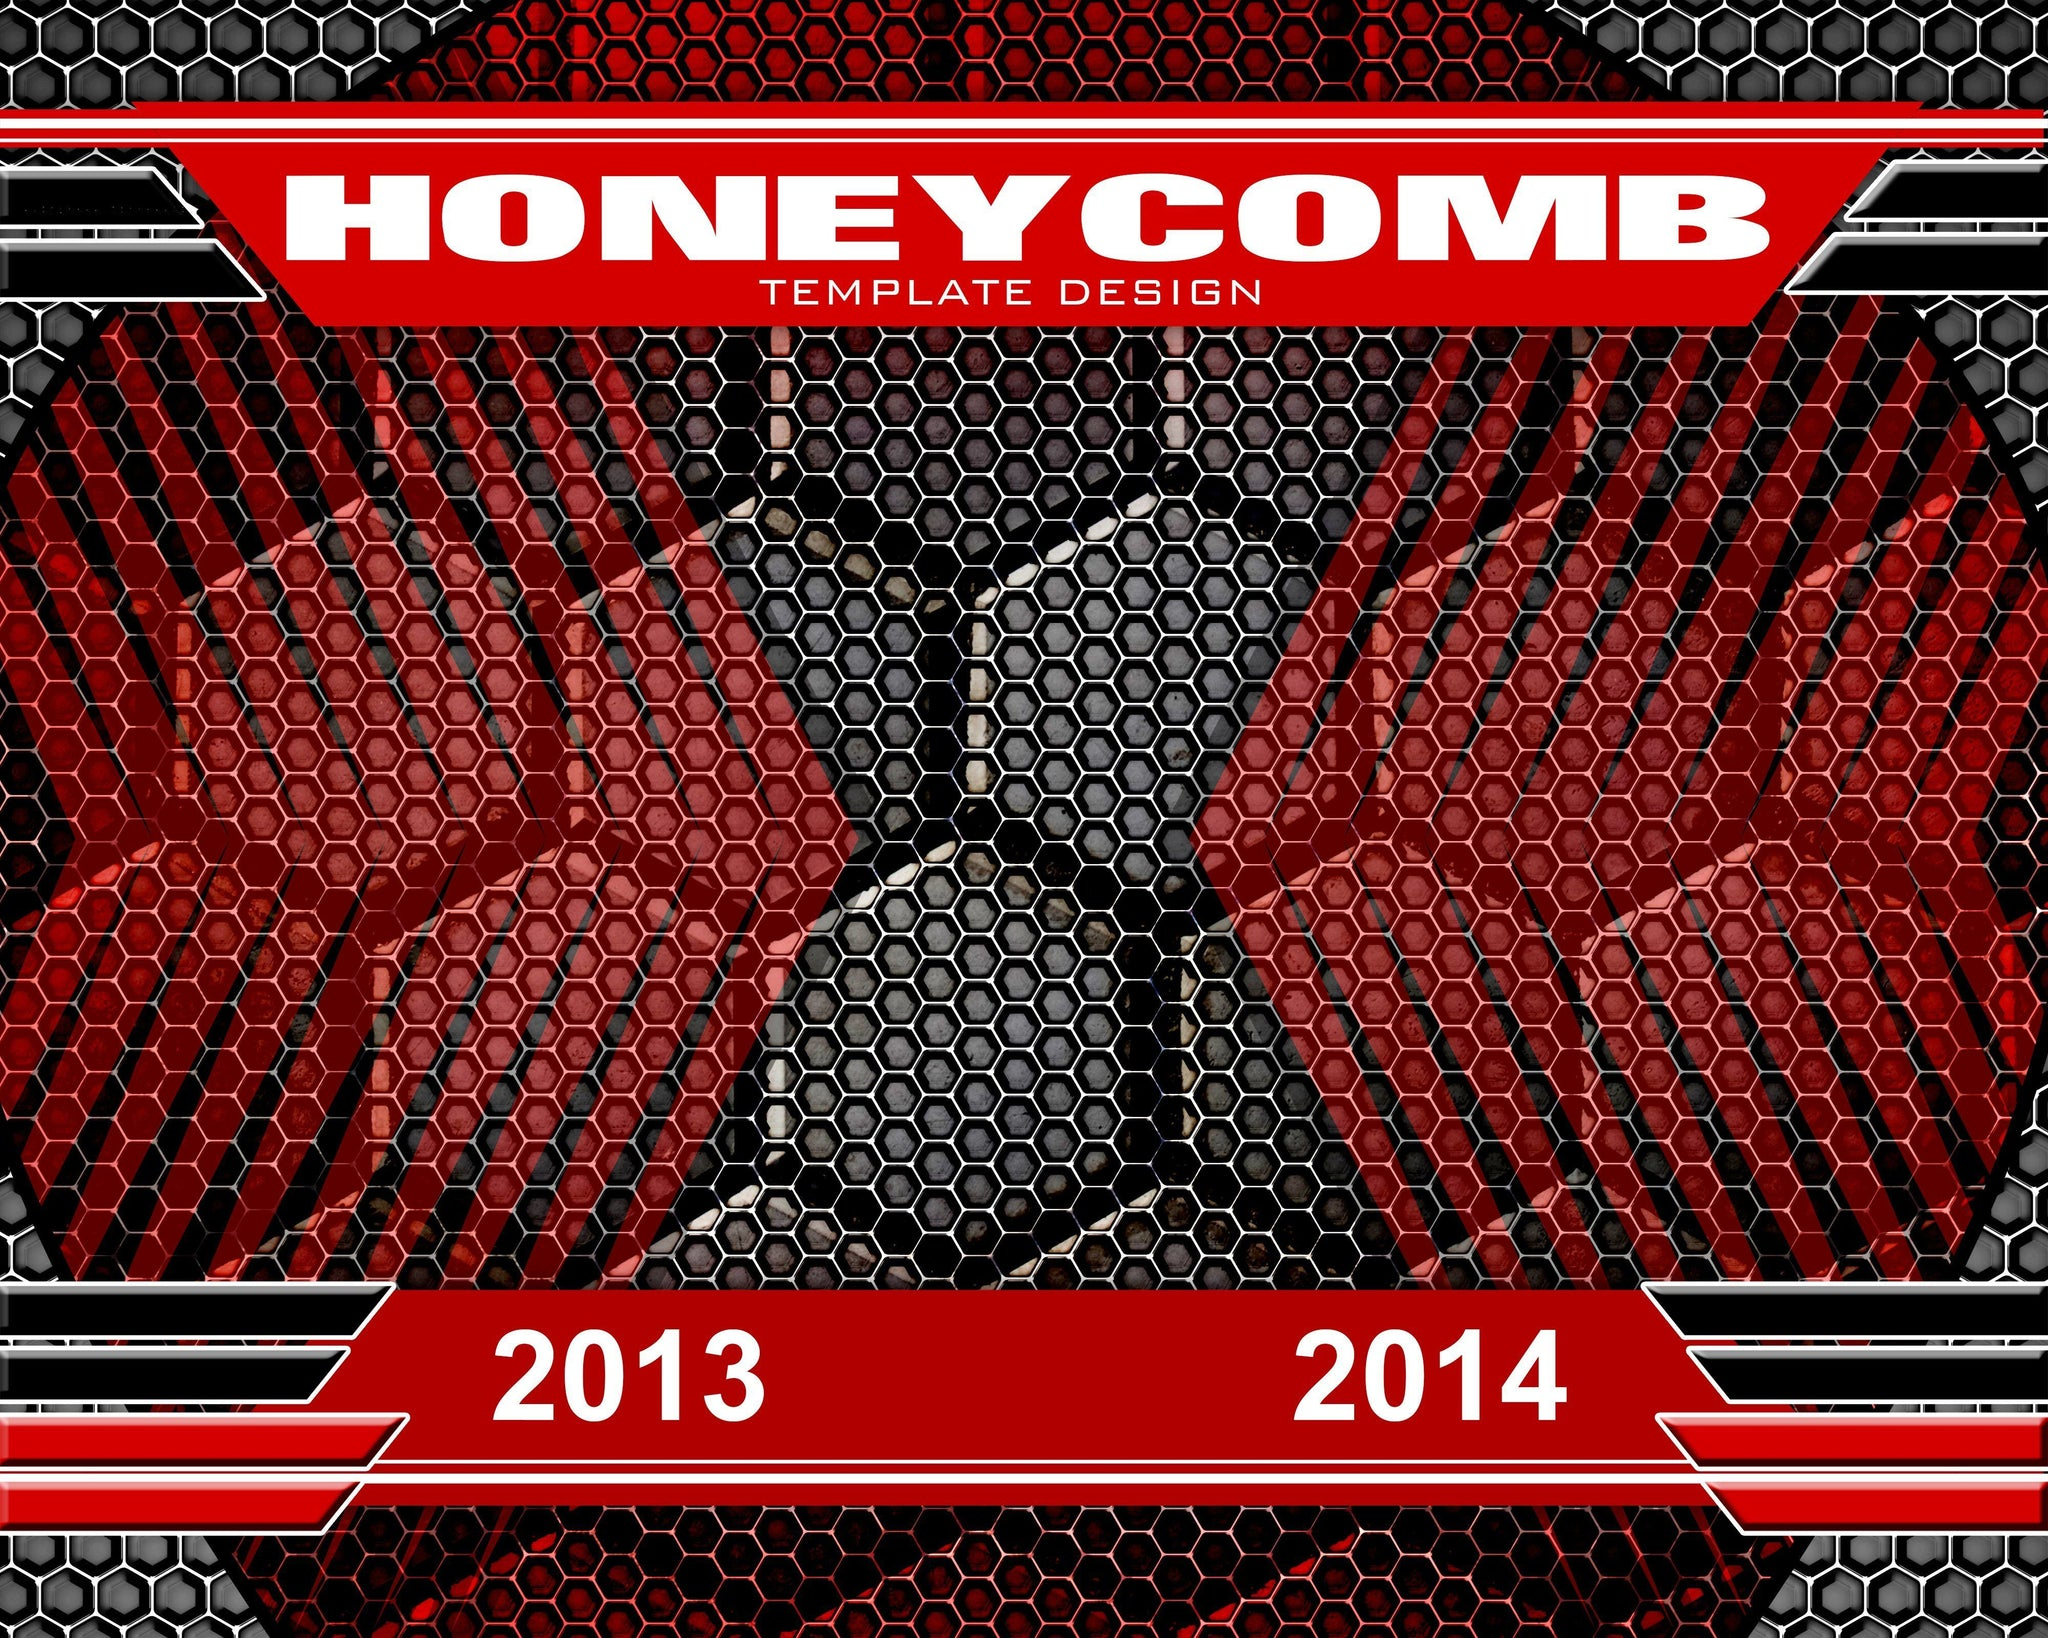 Honeycomb v.1 - Xtreme Team